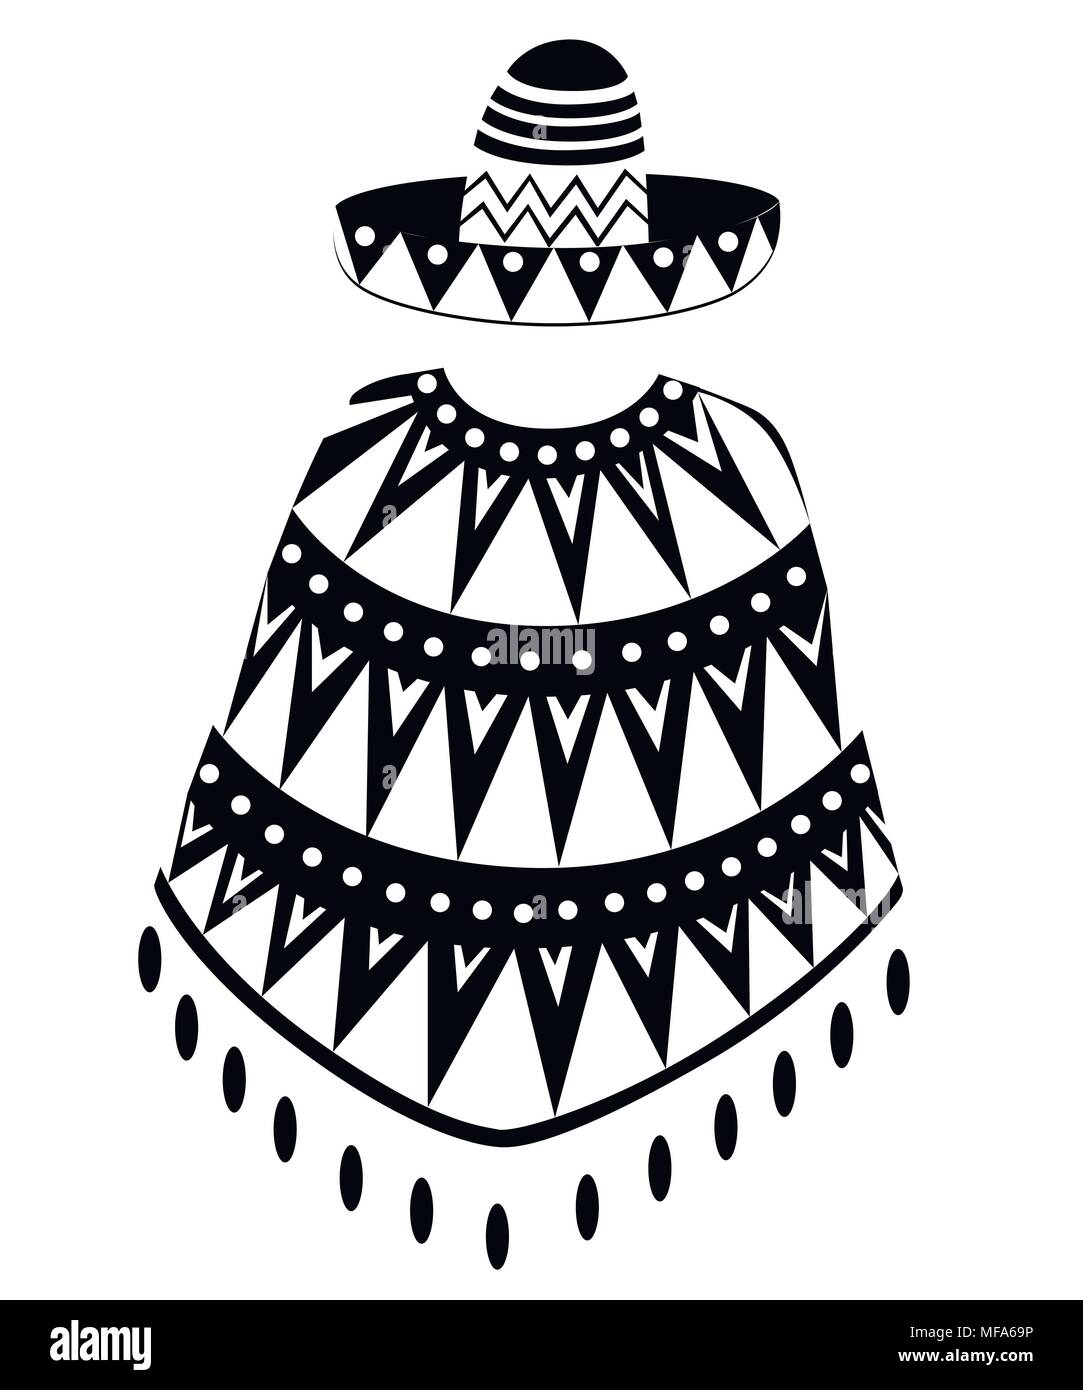 Black Silhouette Sombrero Cartoon Mexican Hat And Poncho Man